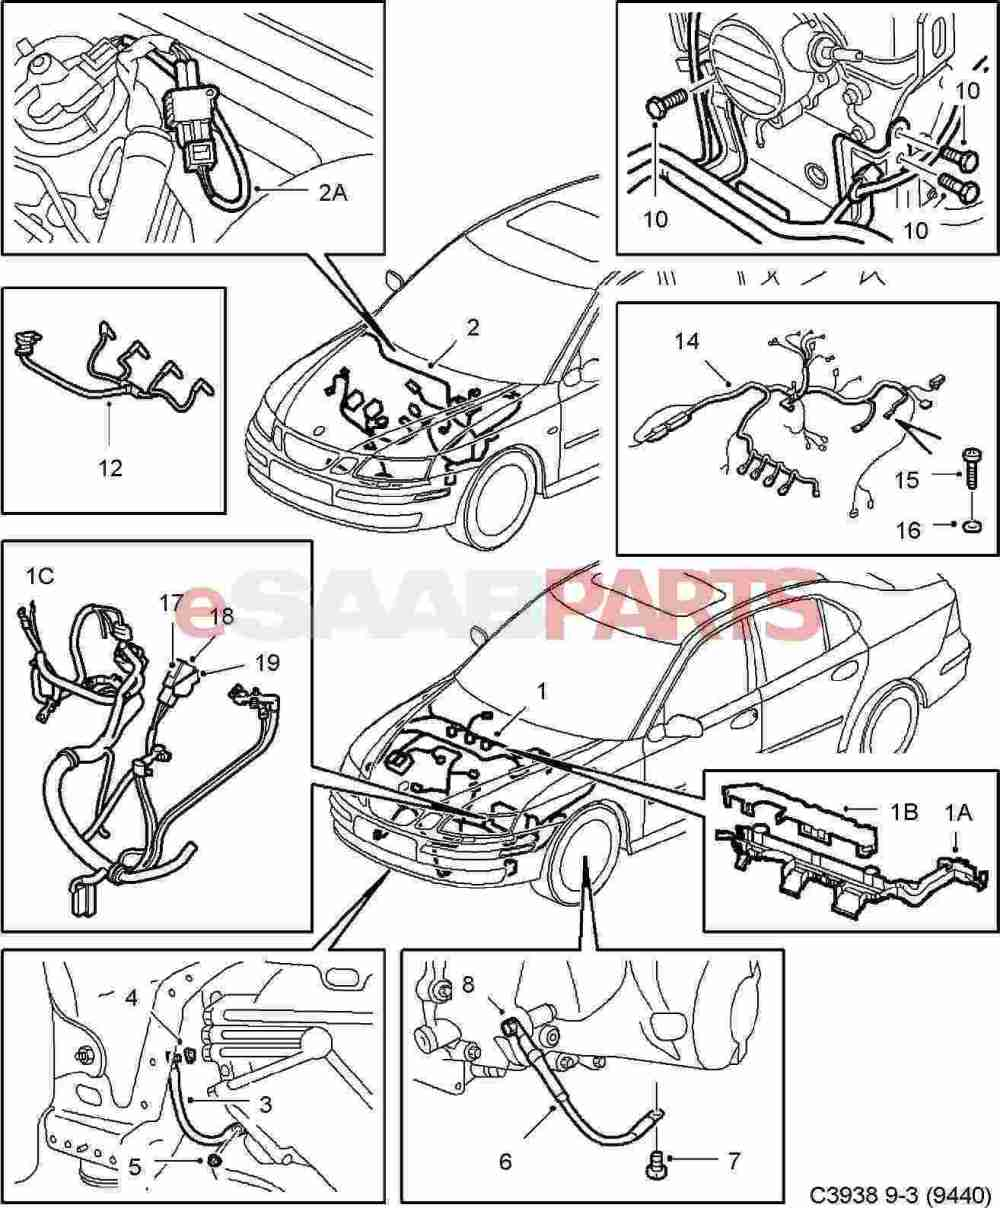 medium resolution of wiring harness for saab 9 3 2003 wiring diagram sheet saab 9 3 2004 wiring harness